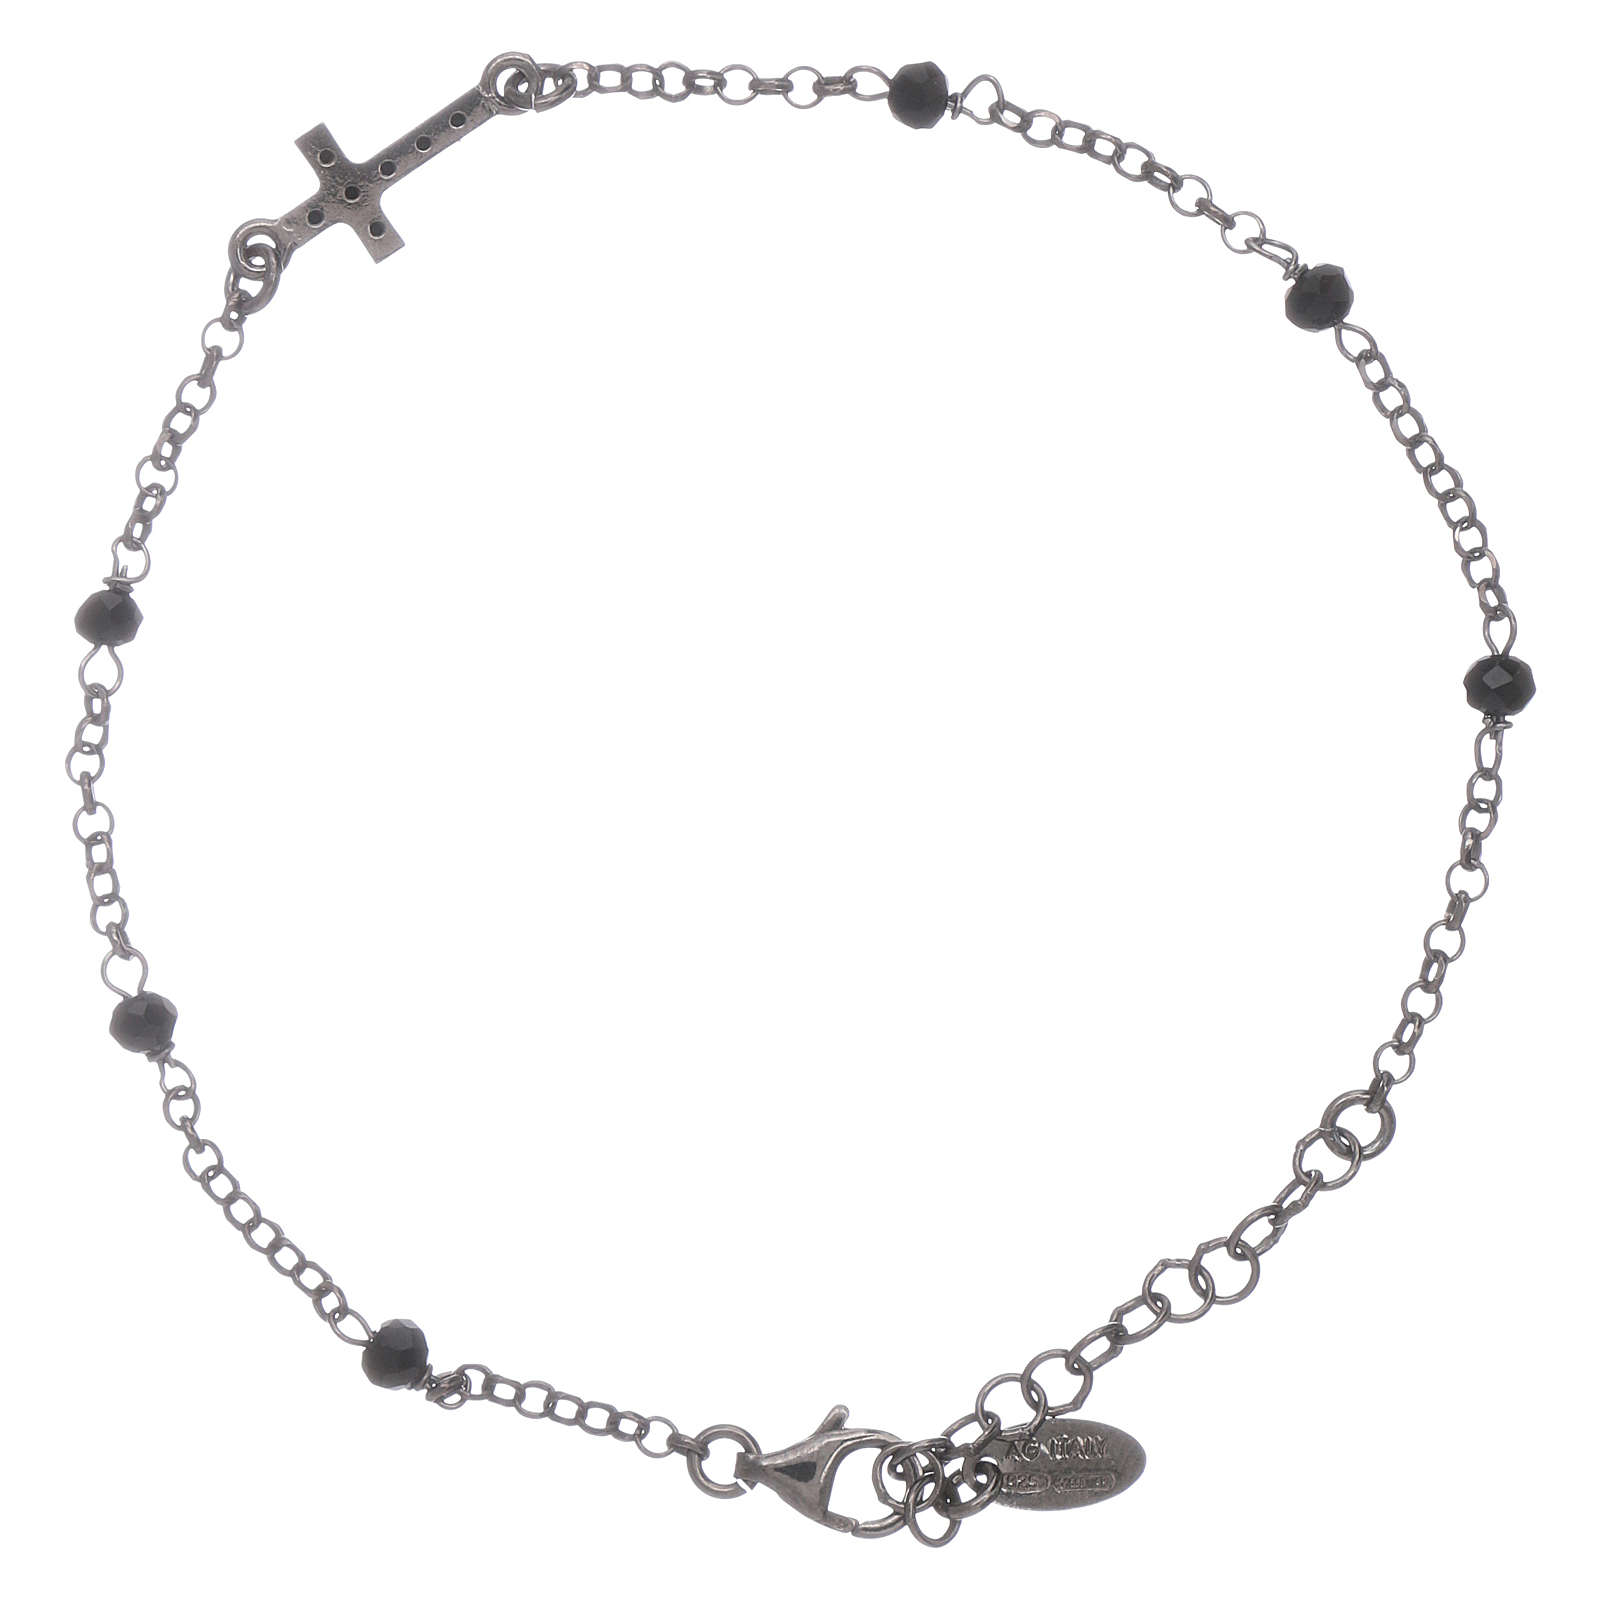 AMEN 925 sterling silver bracelet finished in rhodium with a zirconate cross and black crystals 4